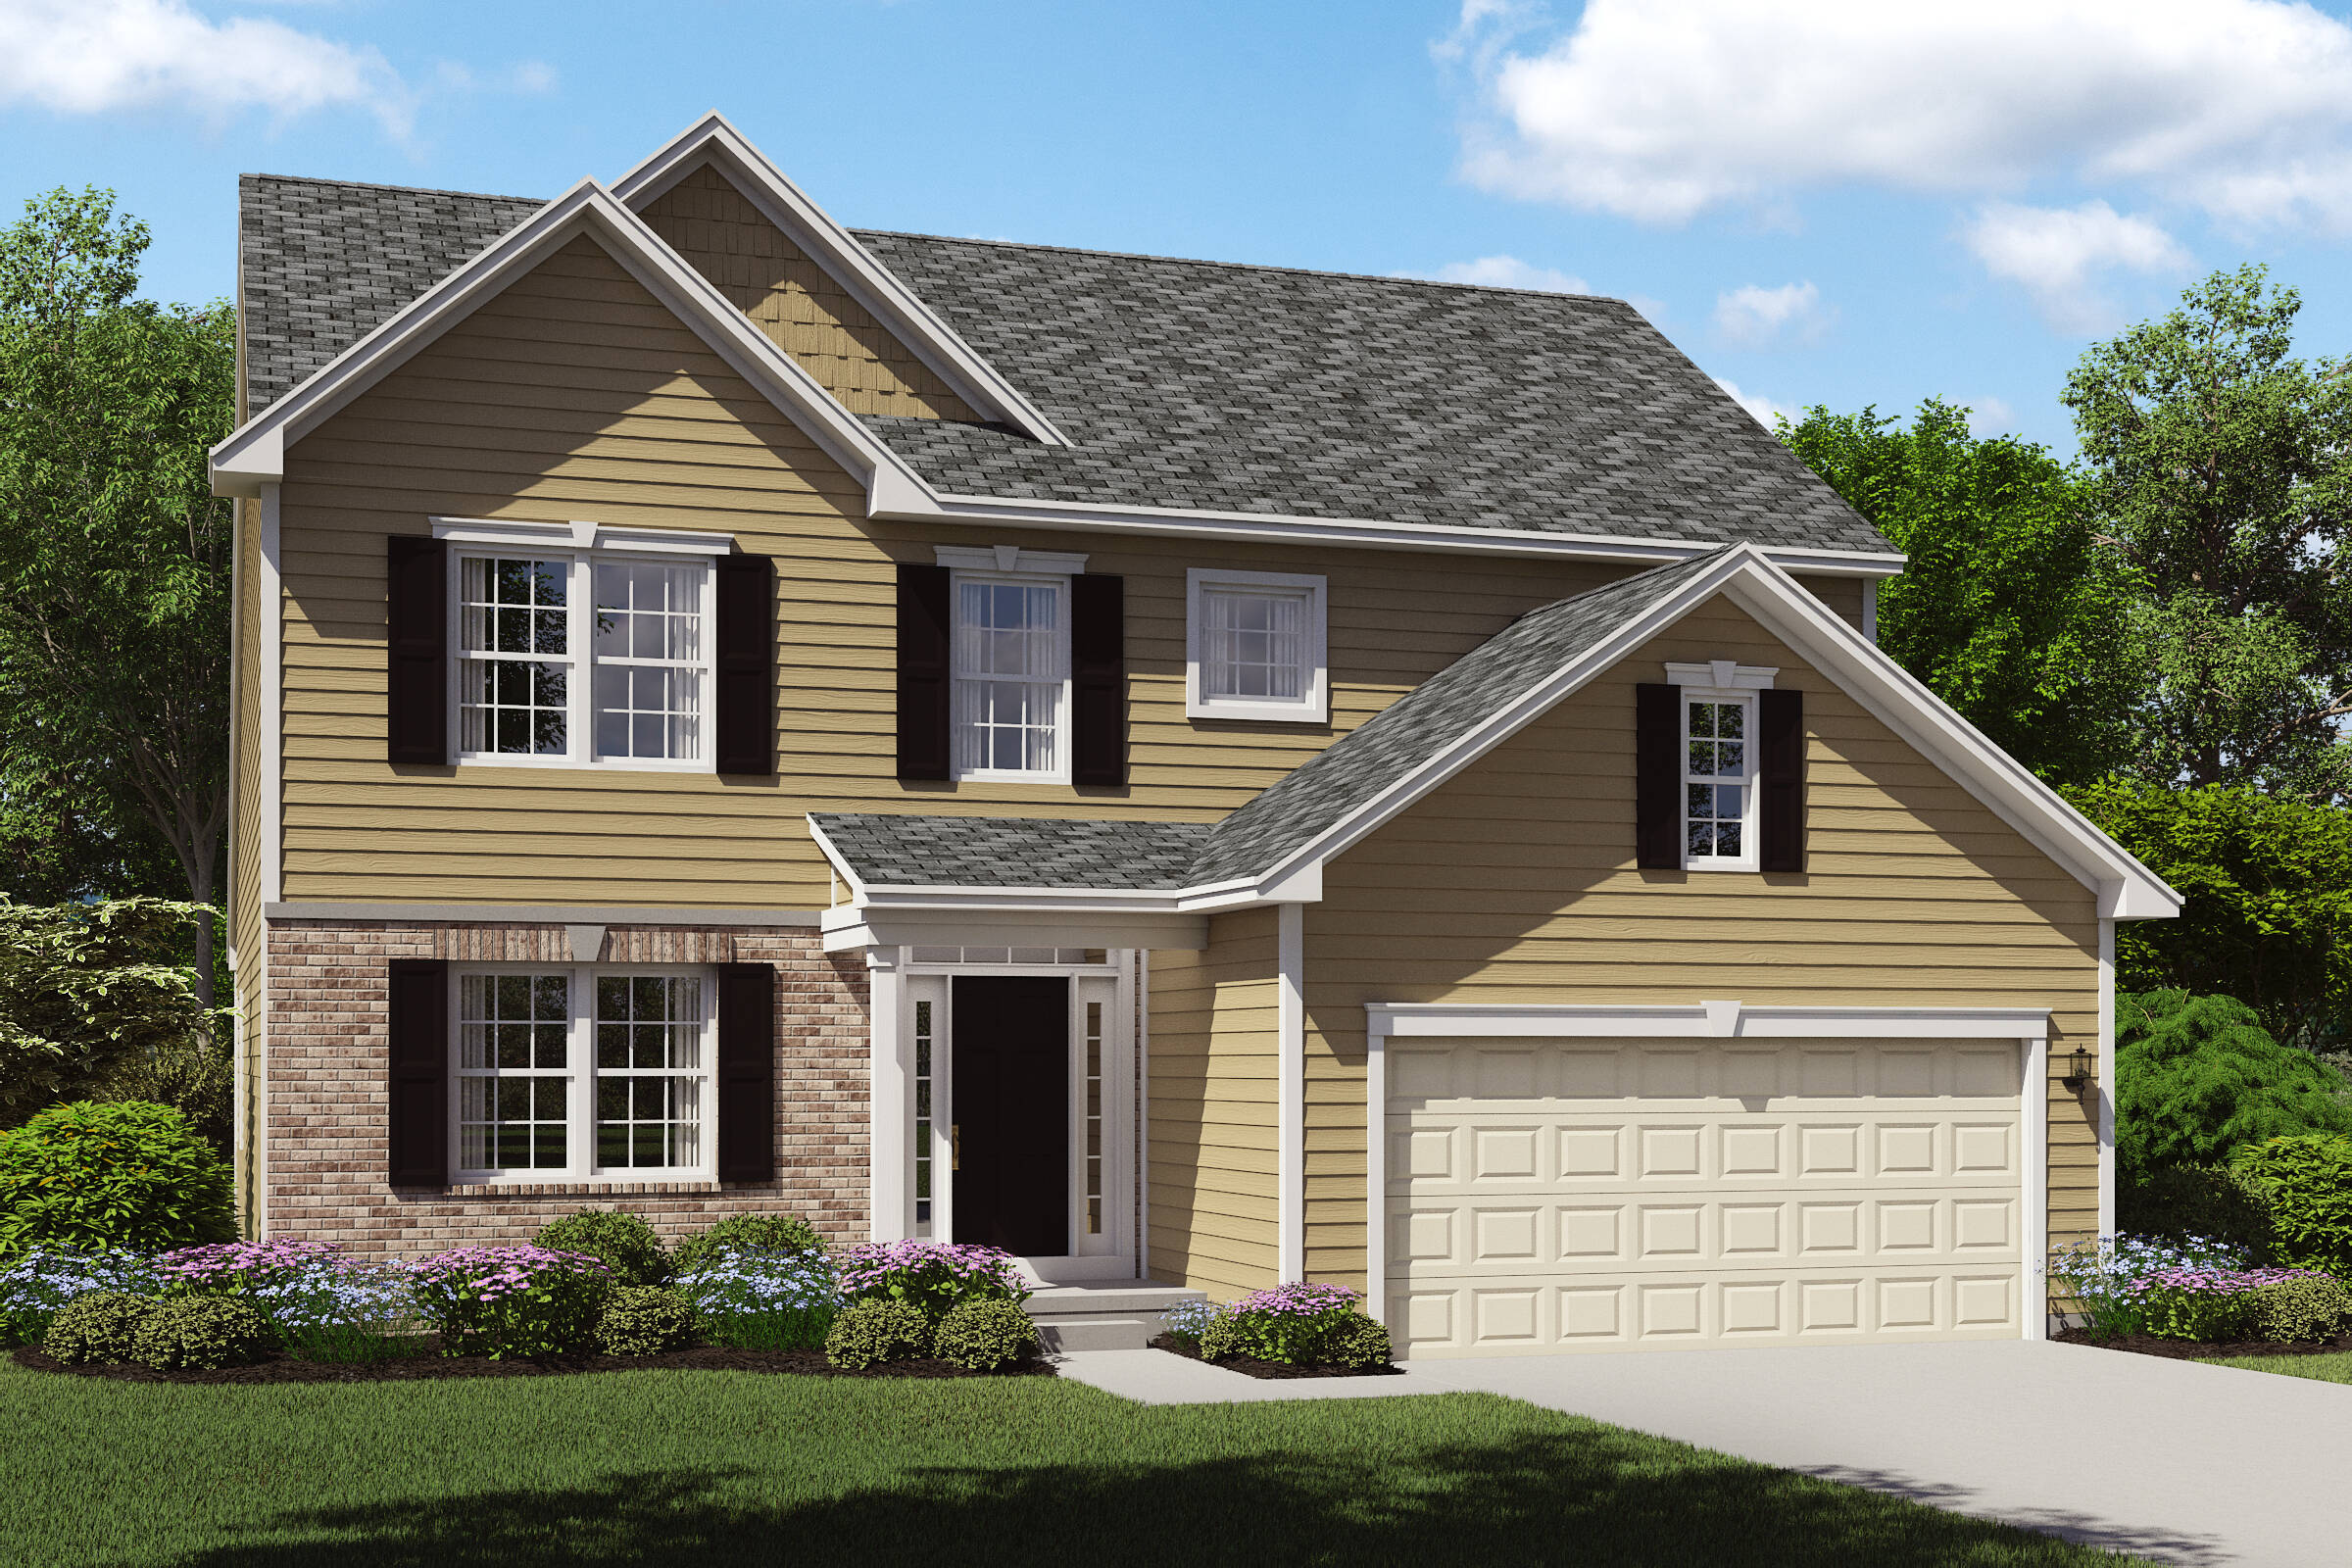 brick exterior new homes northeast ohio oakridge b